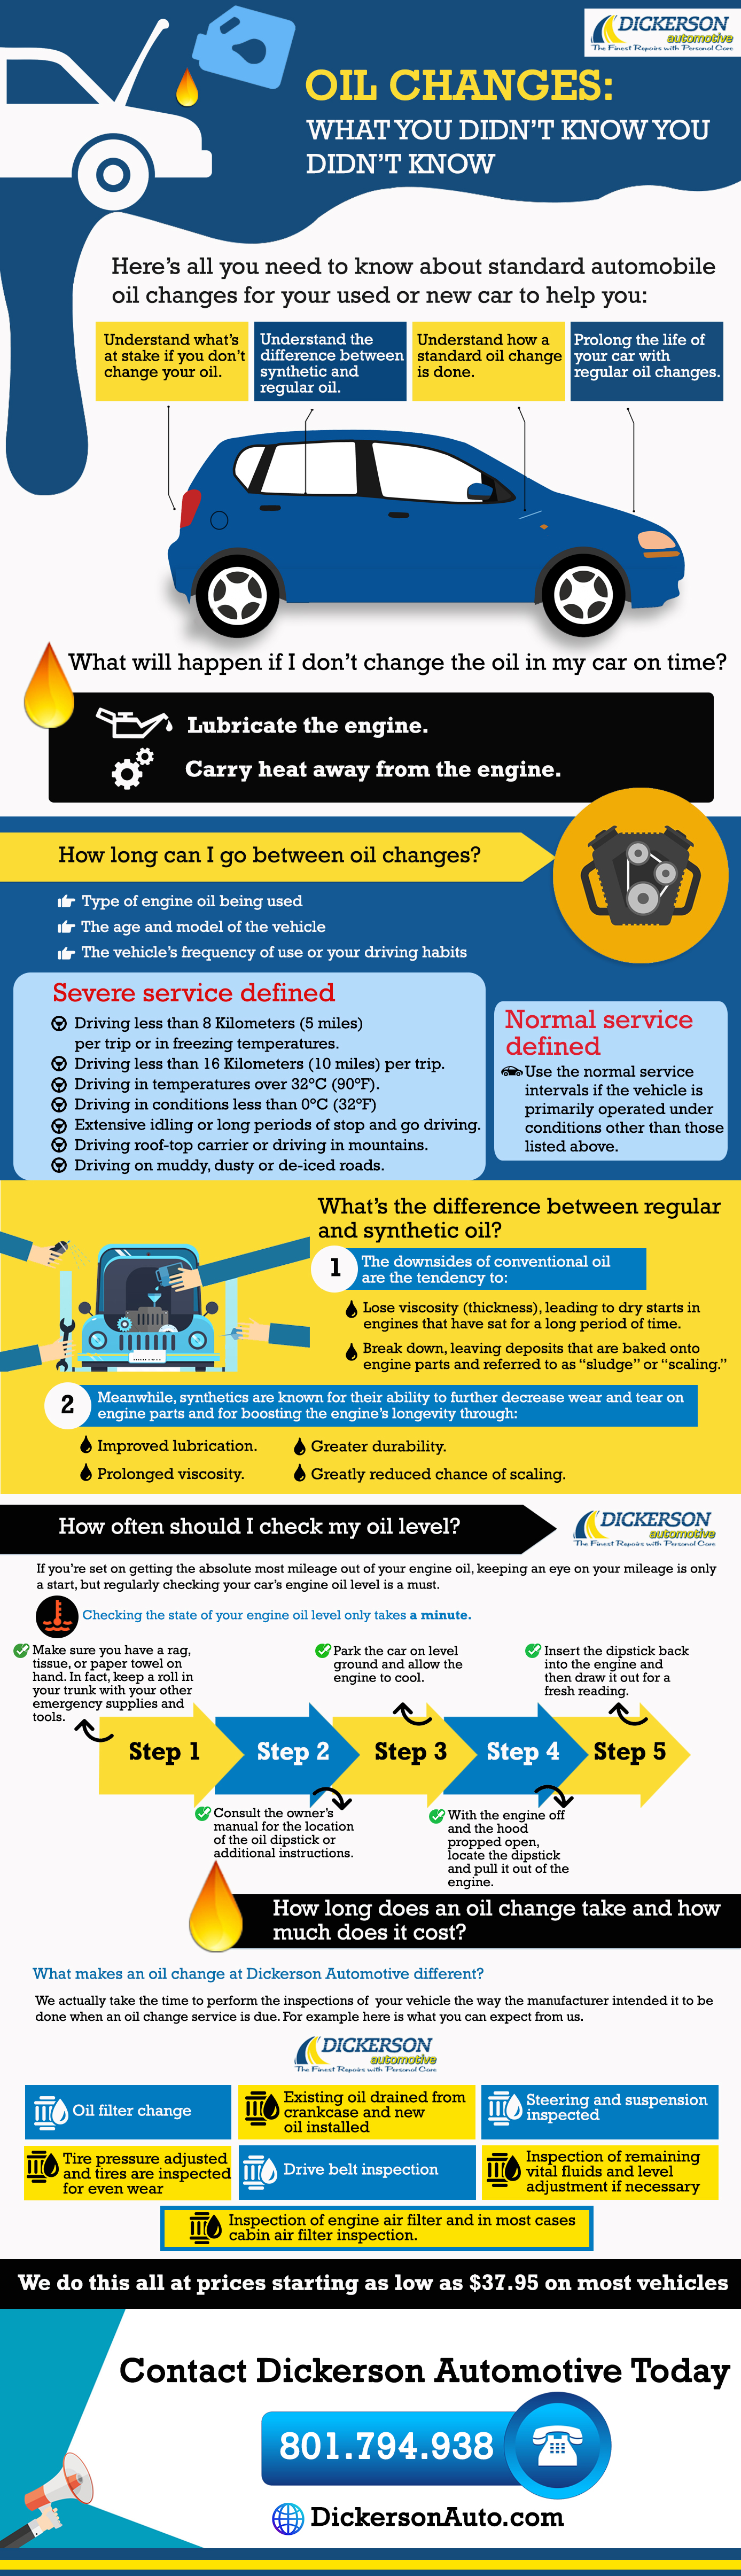 Oil Changes: What You Didn't Know You Didn't Know Infographic